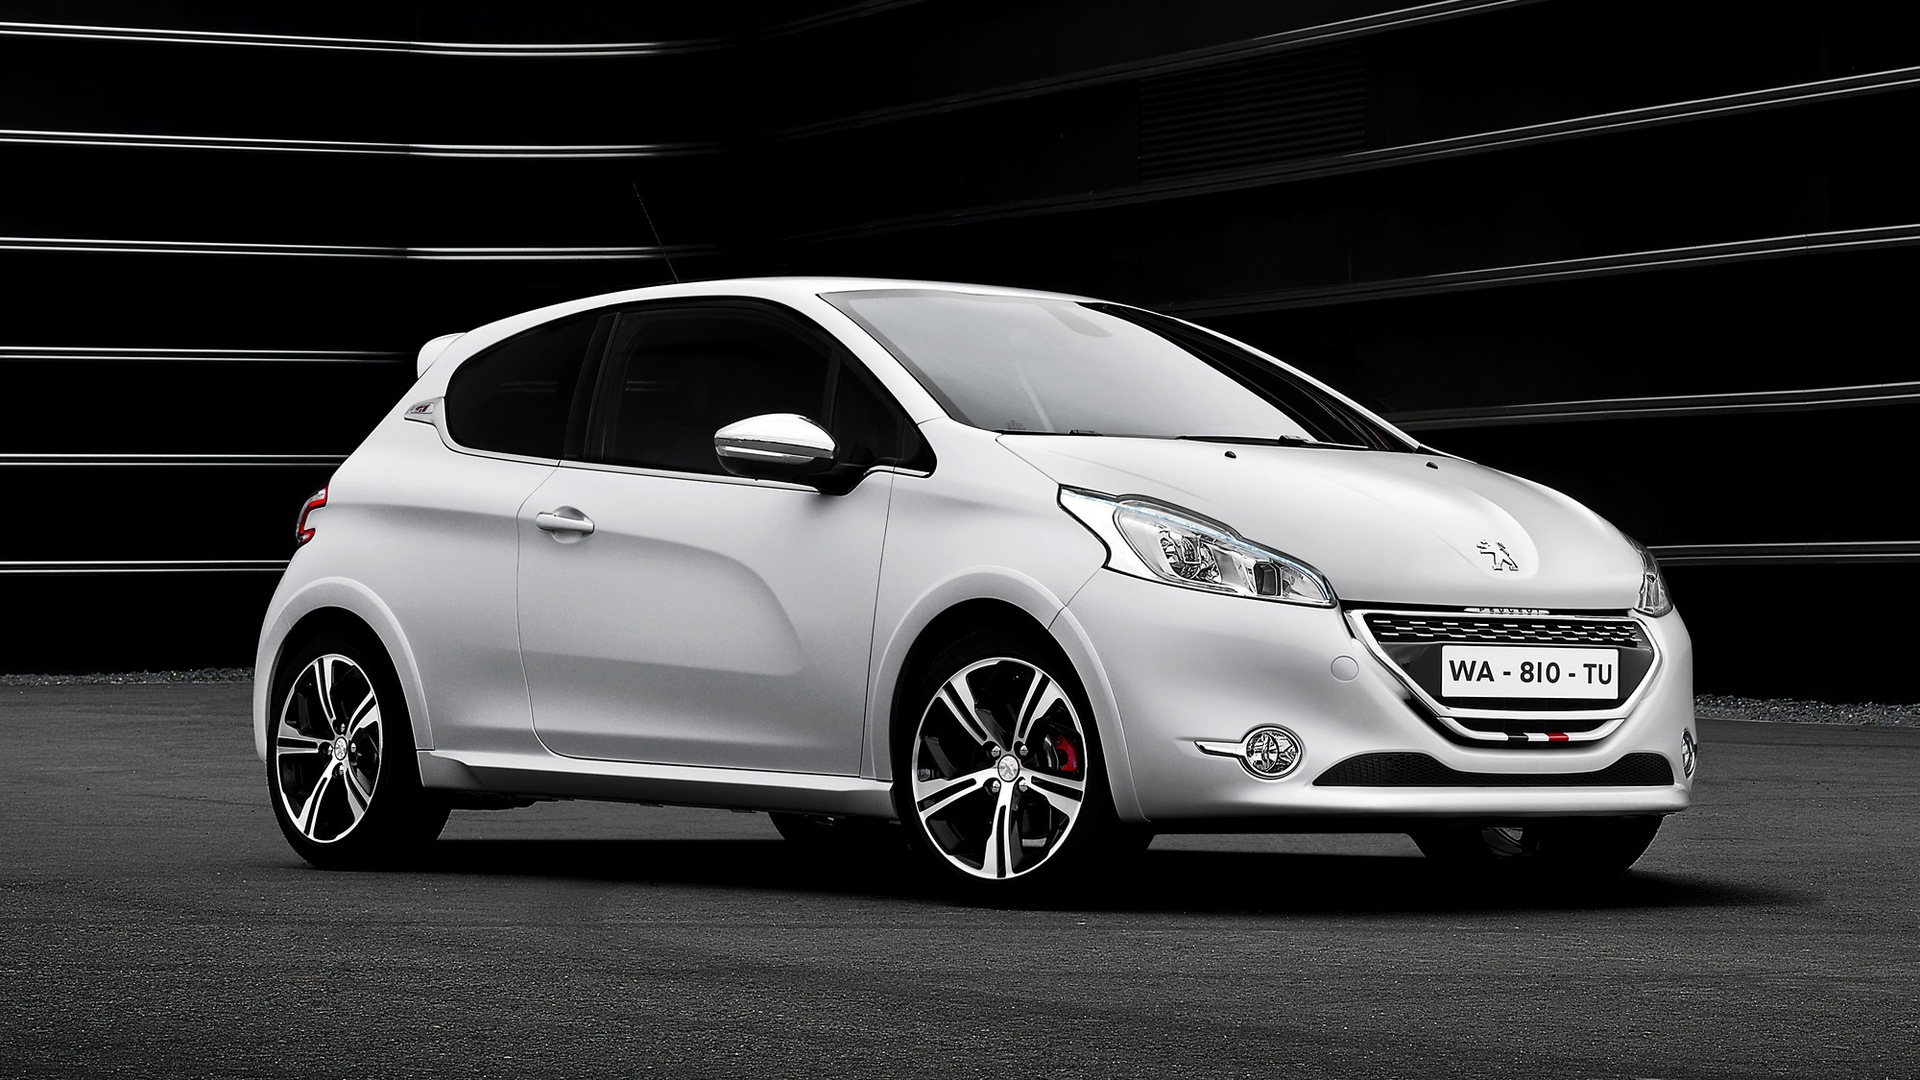 peugeot 208 gti wallpapers images photos pictures backgrounds. Black Bedroom Furniture Sets. Home Design Ideas